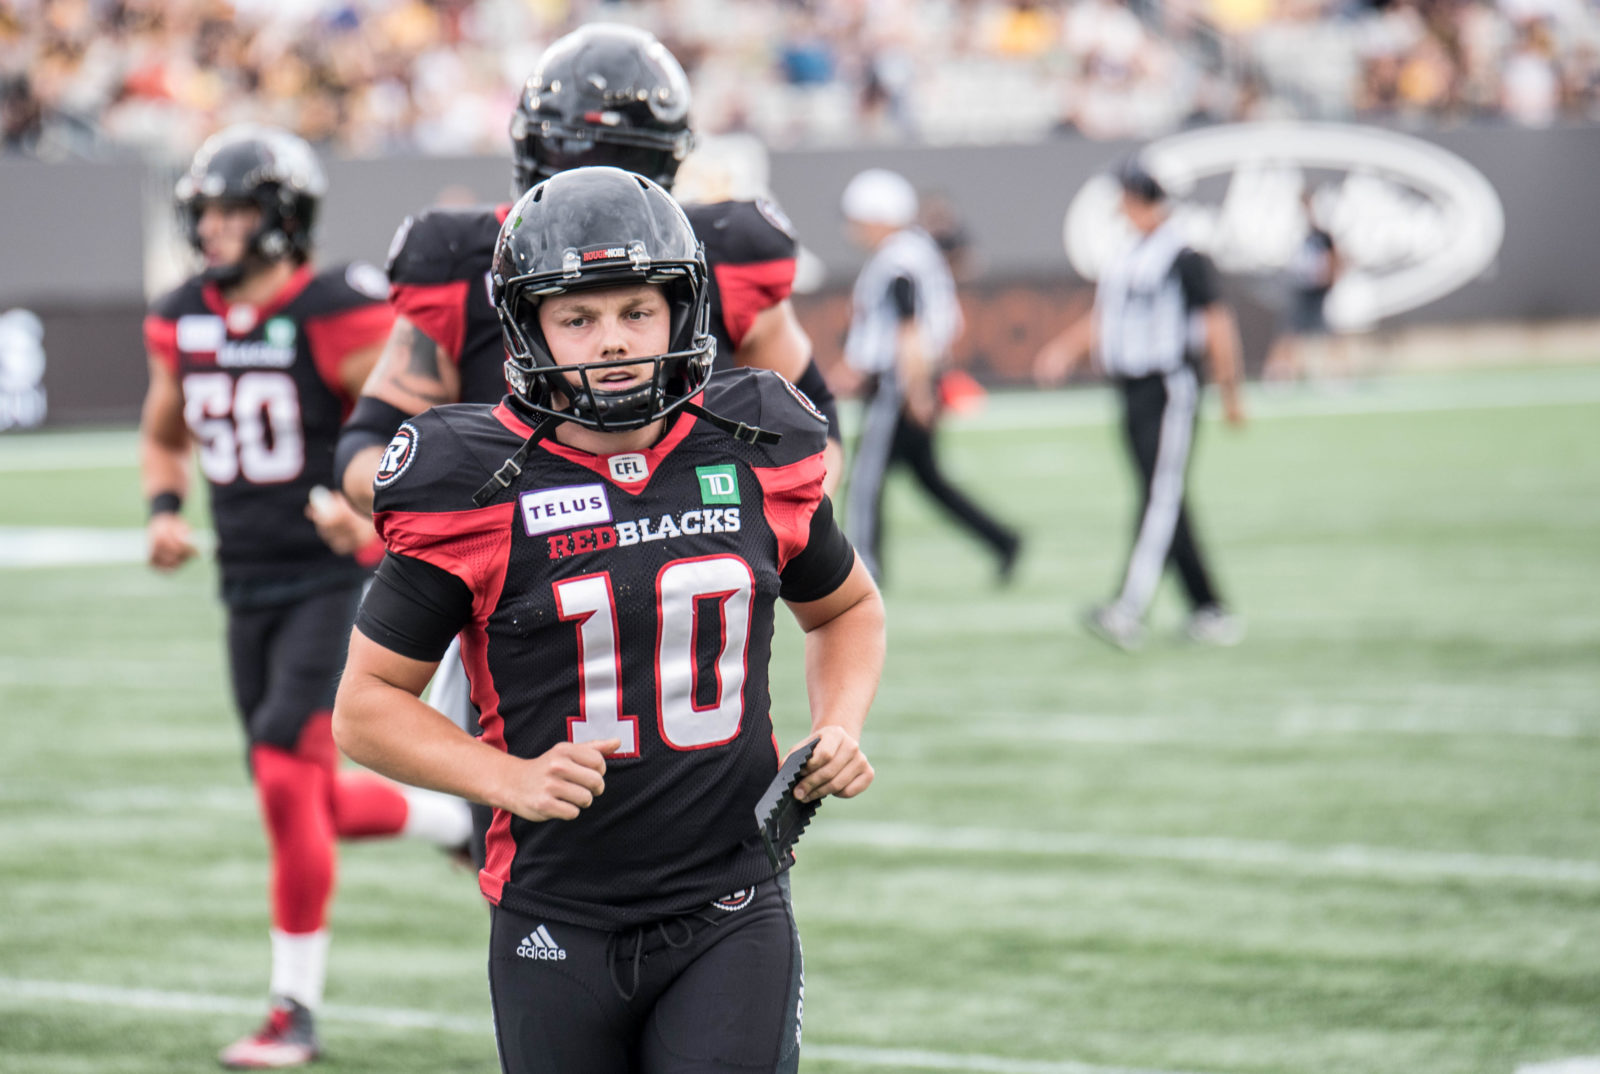 Kingston Cannon: Lewis Ward sets another record